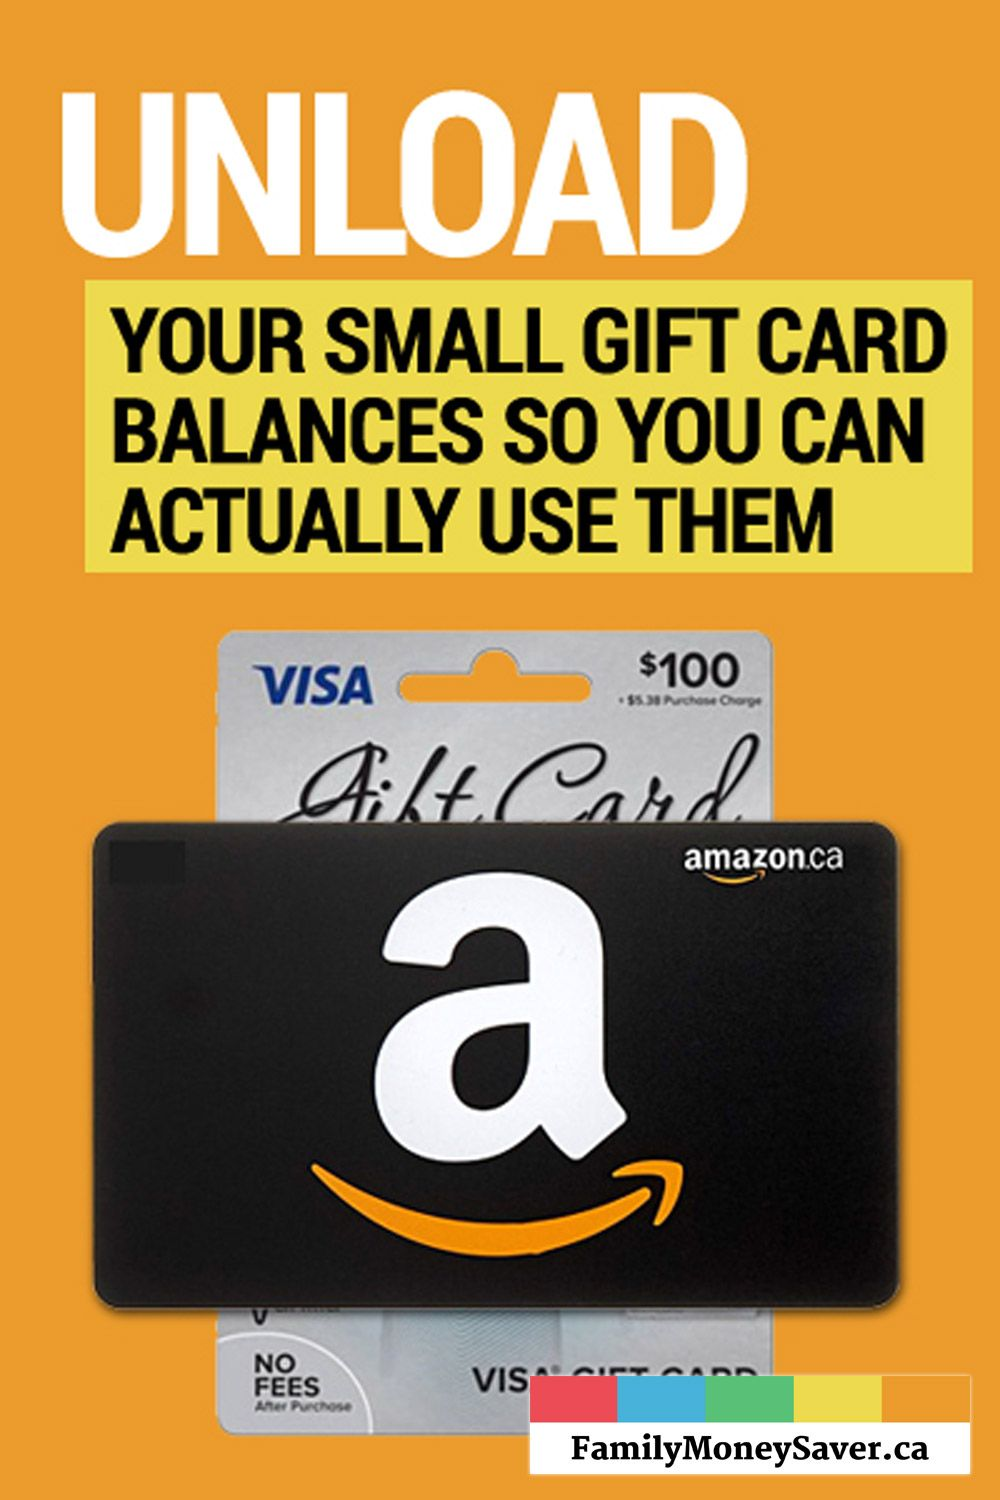 Amazon hack to use your gift cards with small balances in